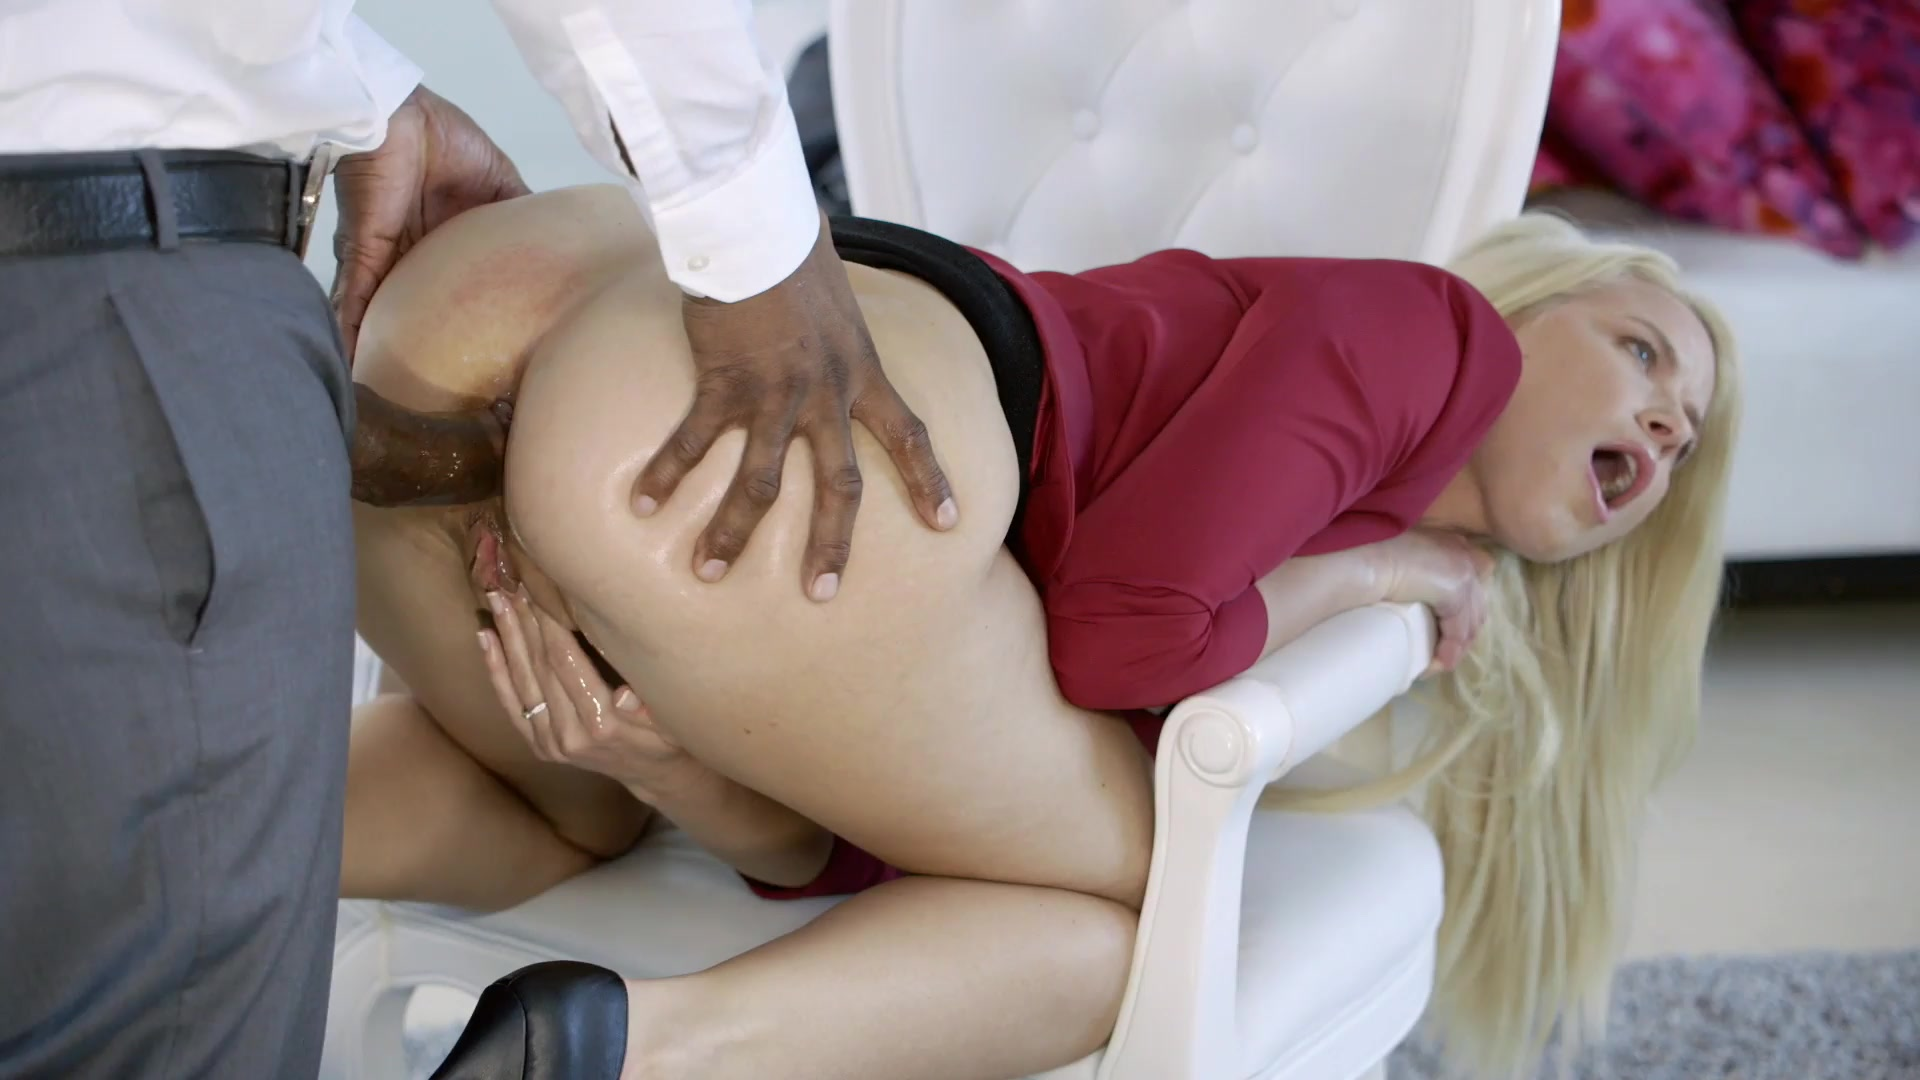 Deep anal with a schoolgirl in stockings, he filled her ass with thick sperm